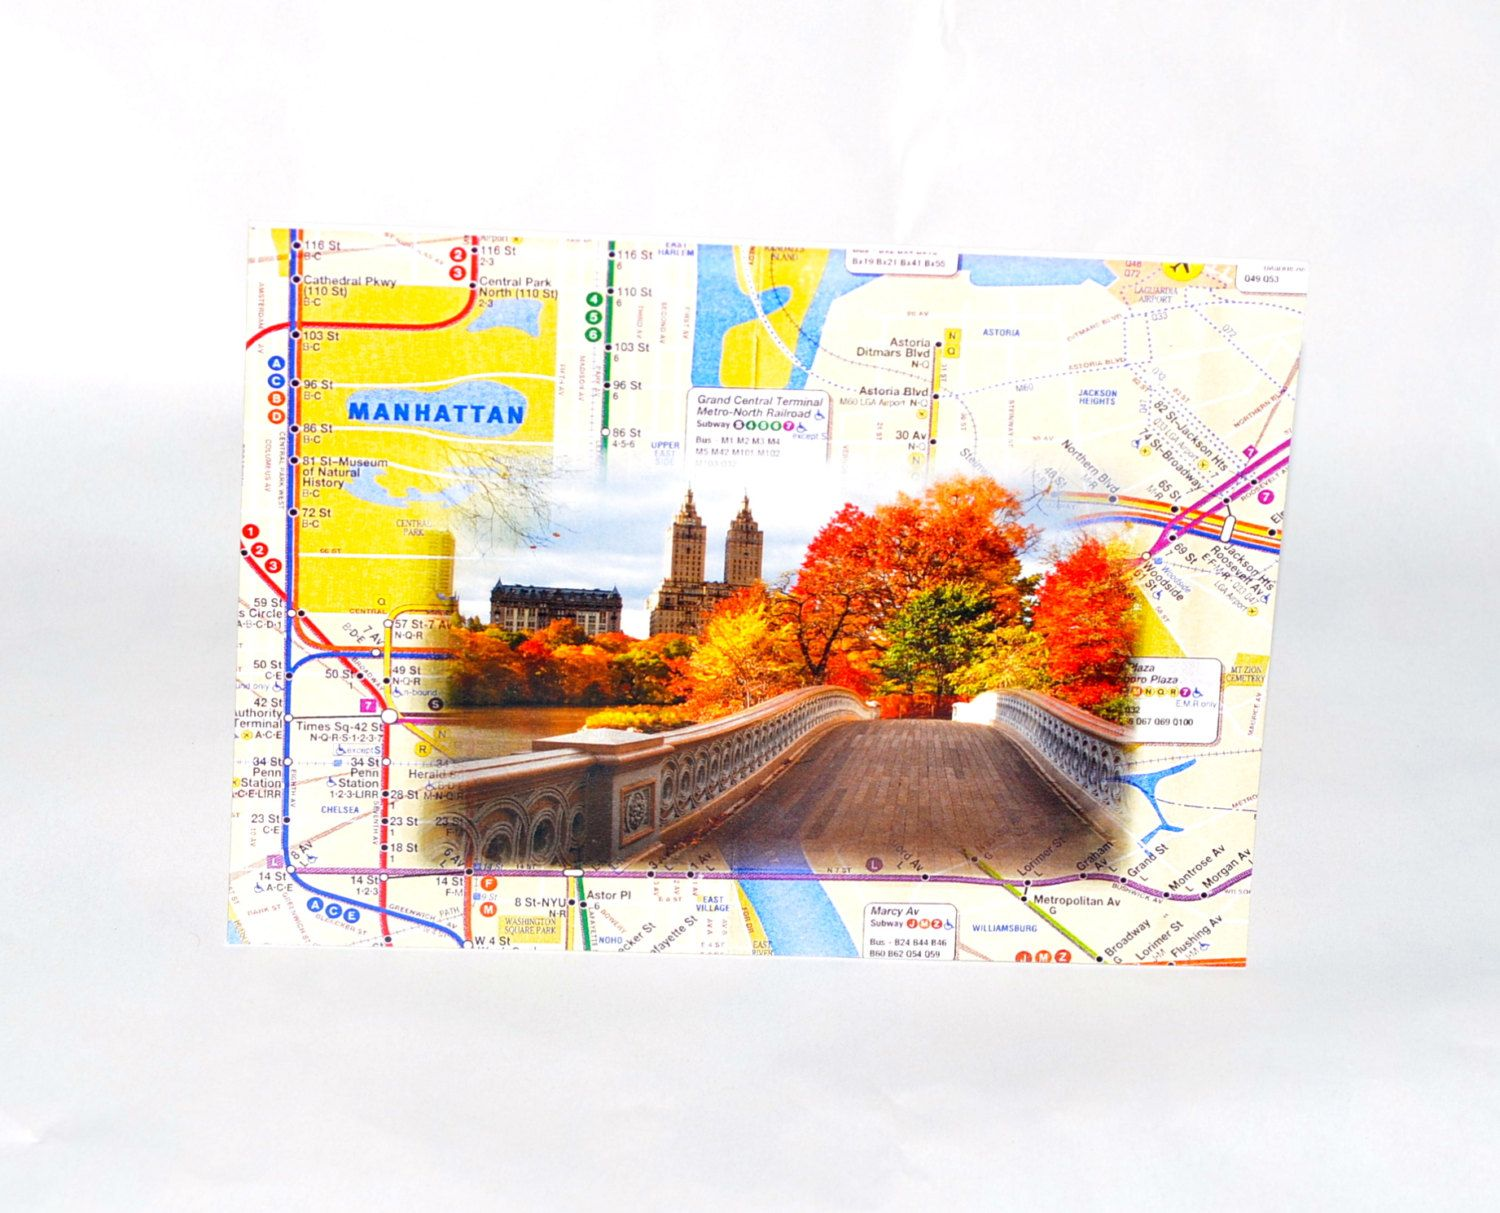 Nyc Subway Map Central Park.New York Central Park Image Greeting Card By Lagsheystore On Etsy